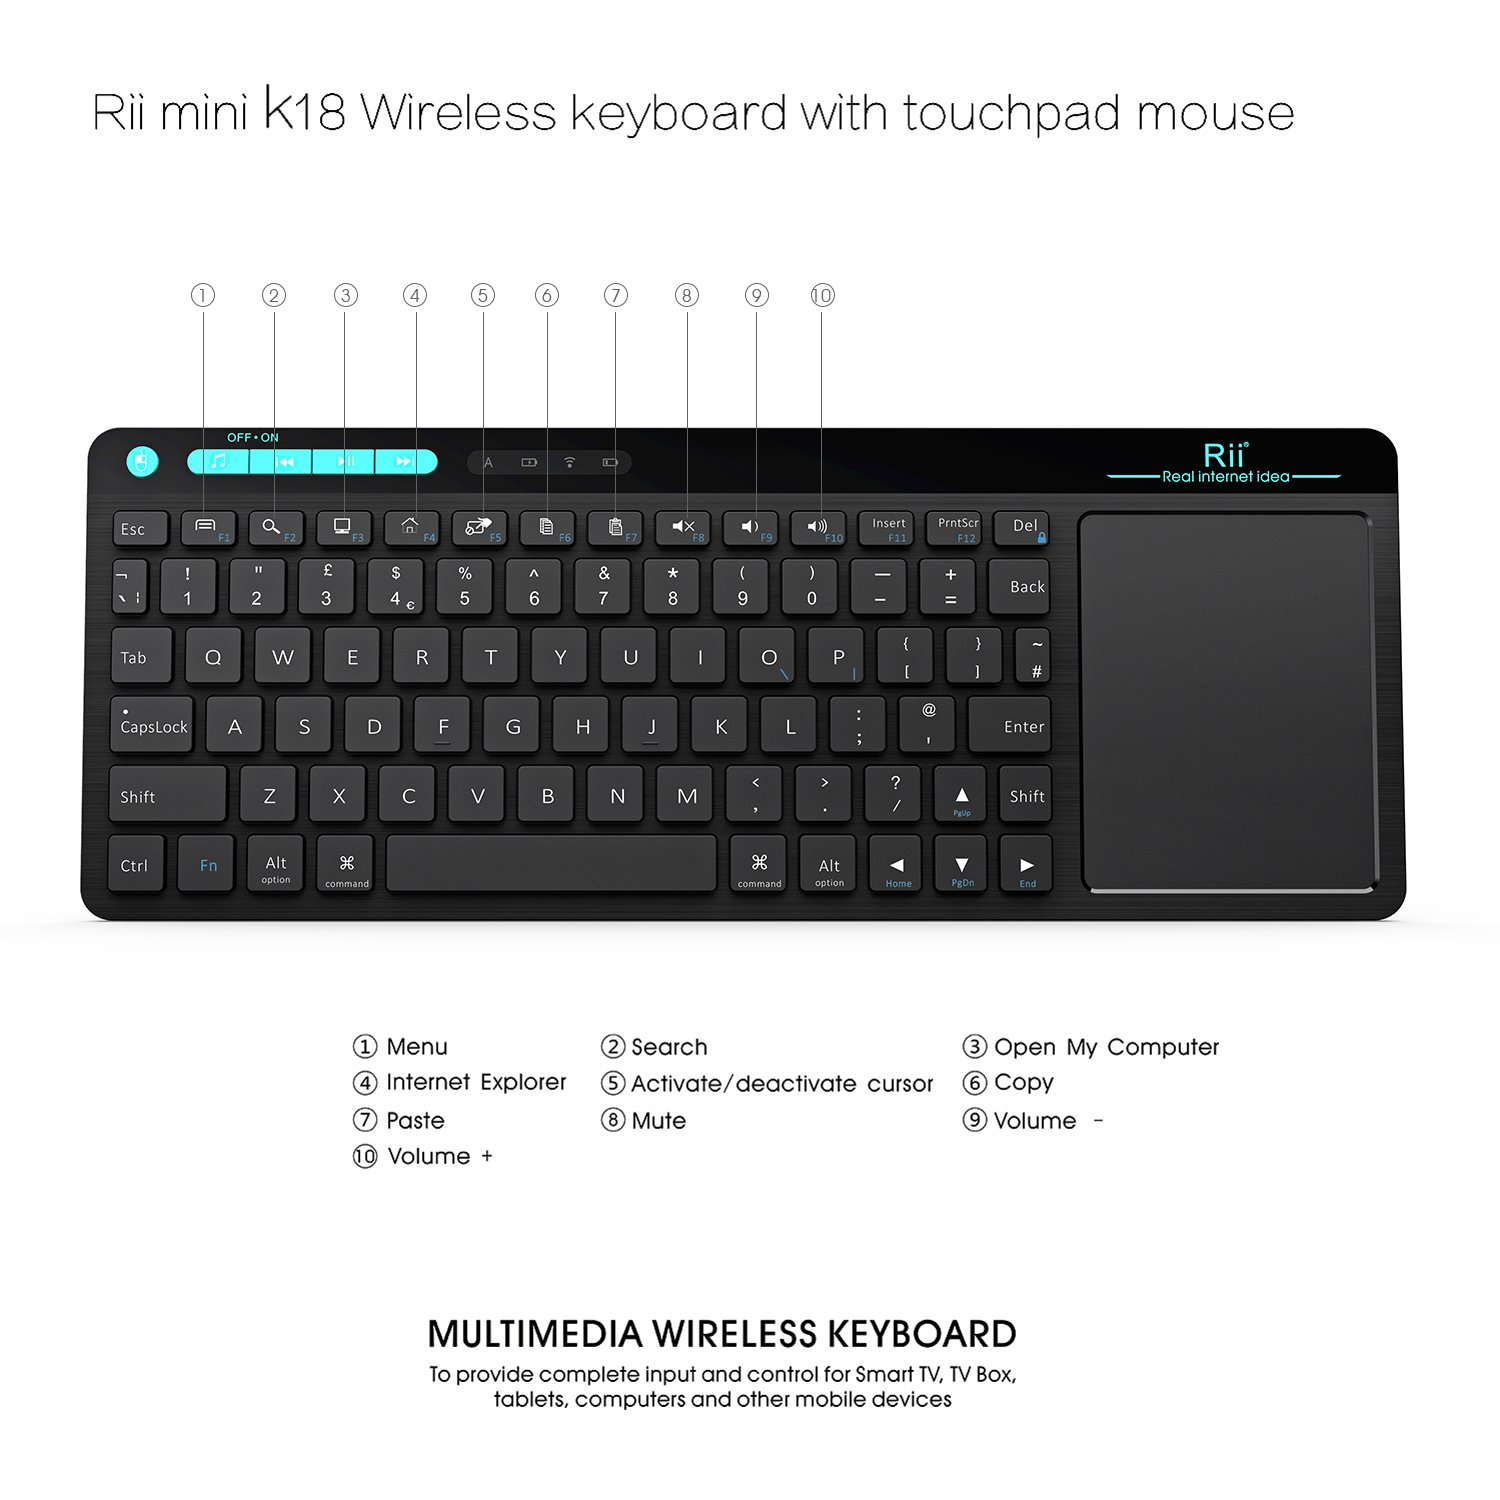 Rii K18 Touch Wireless Keyboard Black (UK Keyboard Layout QWERTZ)  All-in-One Keyboard With Touch Pad